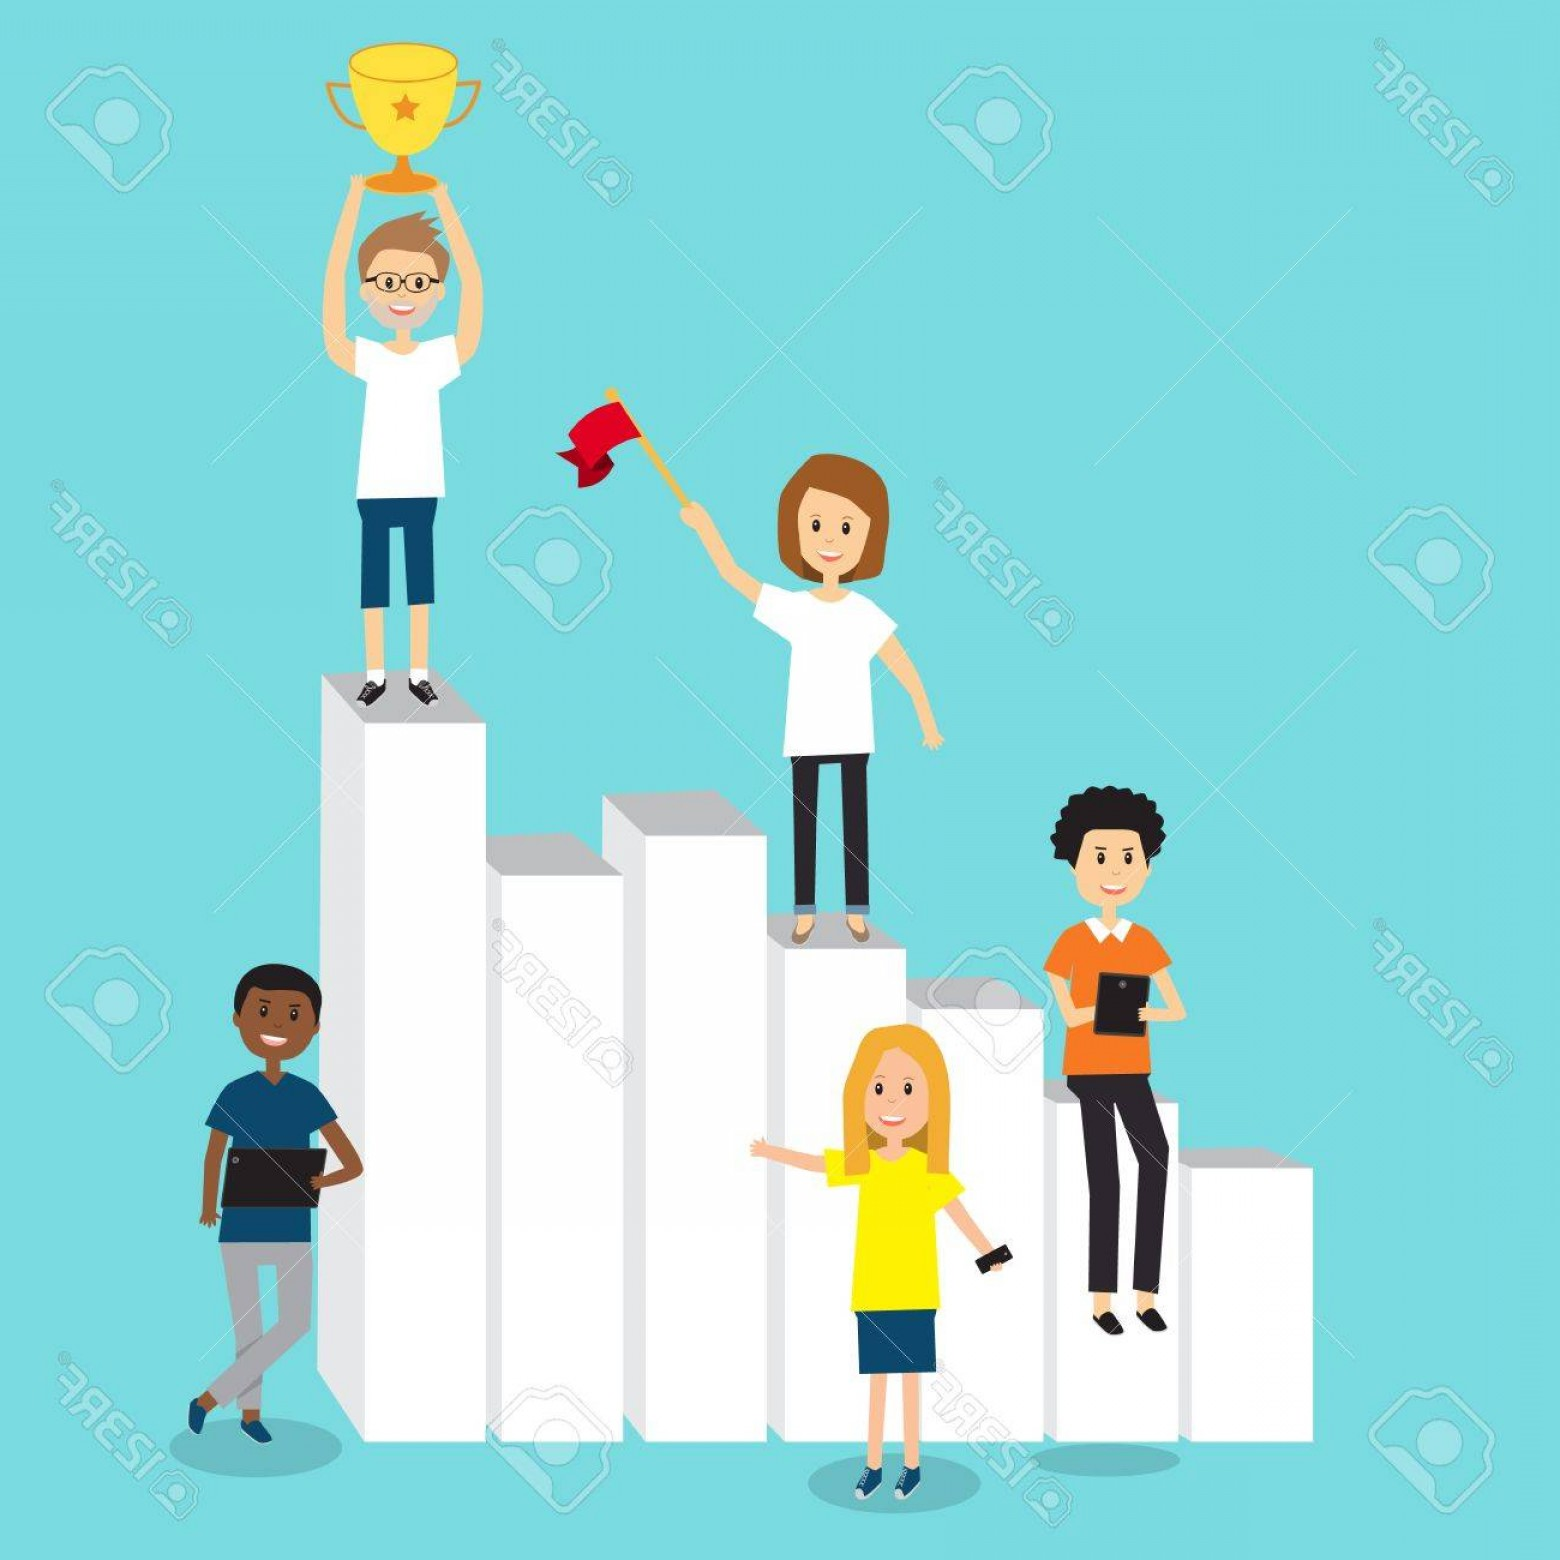 Growth Vector People: Photostock Vector People In Generation Z Team For Growth And Success In Business Chart Illustration Eps